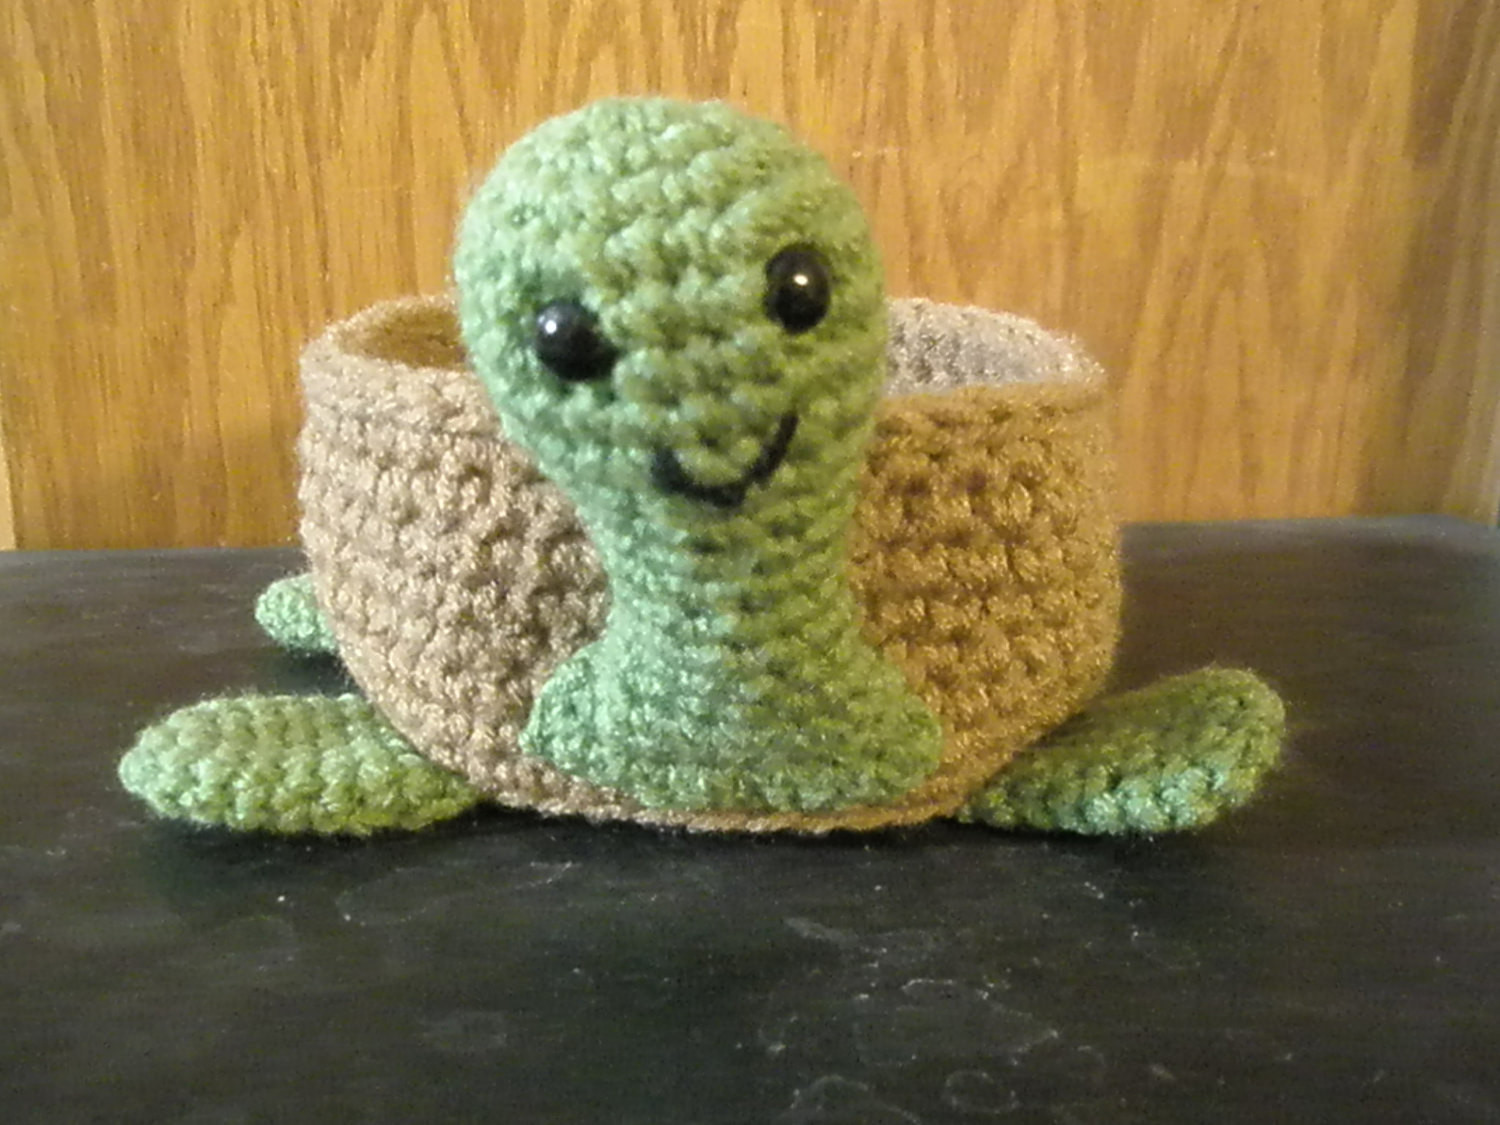 Luxury Crochet Turtle Bowl Pattern This is A Pdf Pattern Only Crochet Turtle Of Innovative 48 Images Crochet Turtle